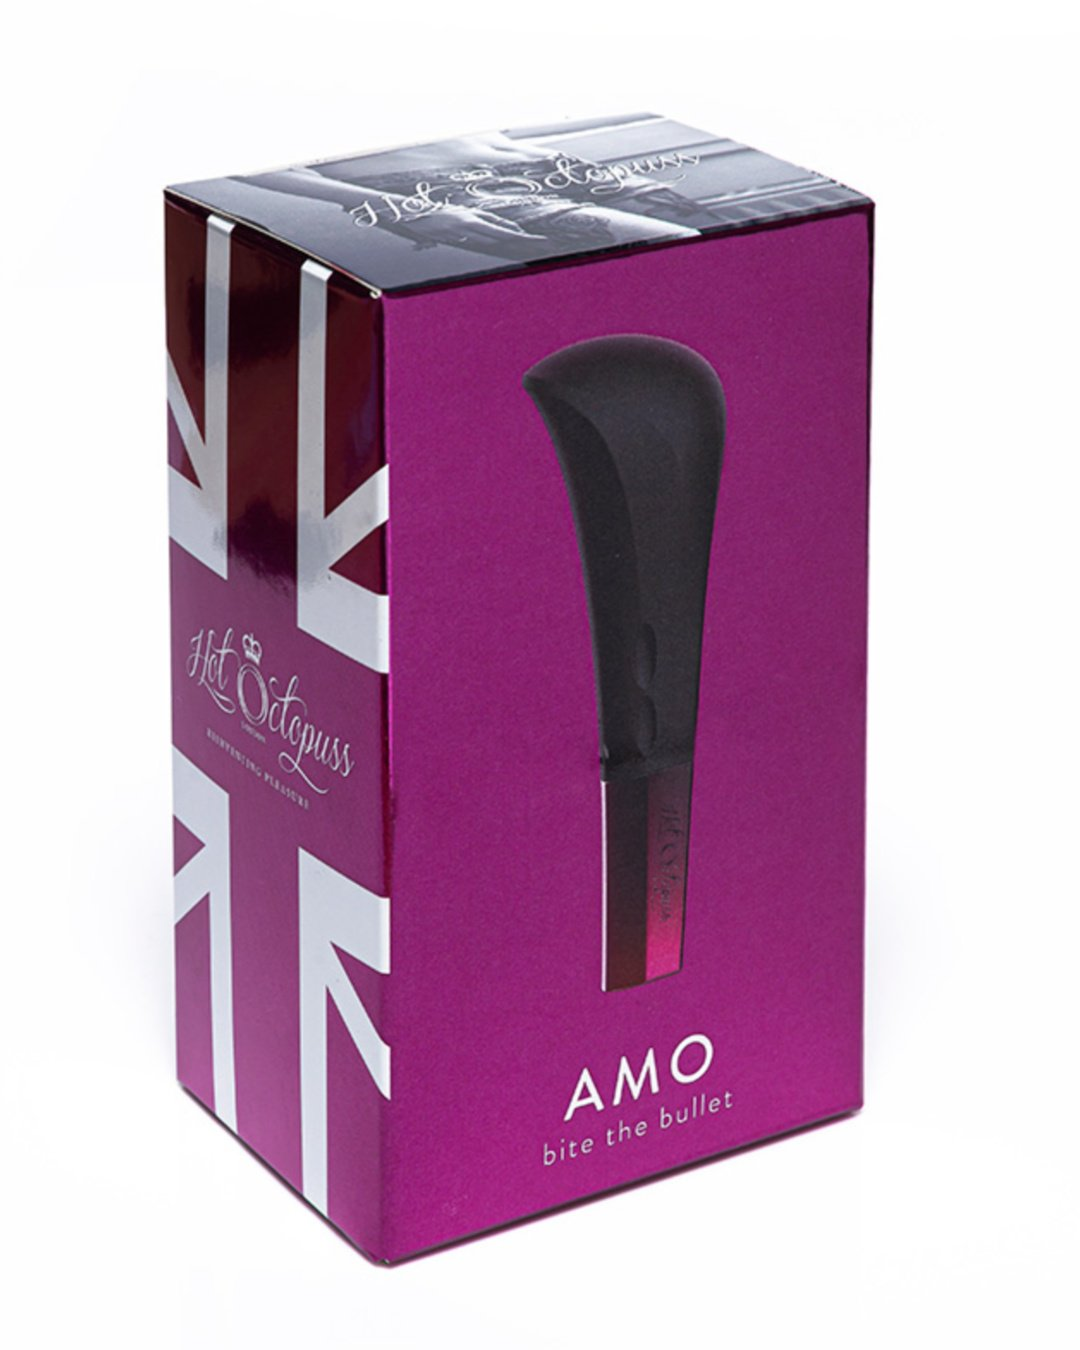 Amo Powerful Silicone Rechargeable Bullet by Hot Octopuss box